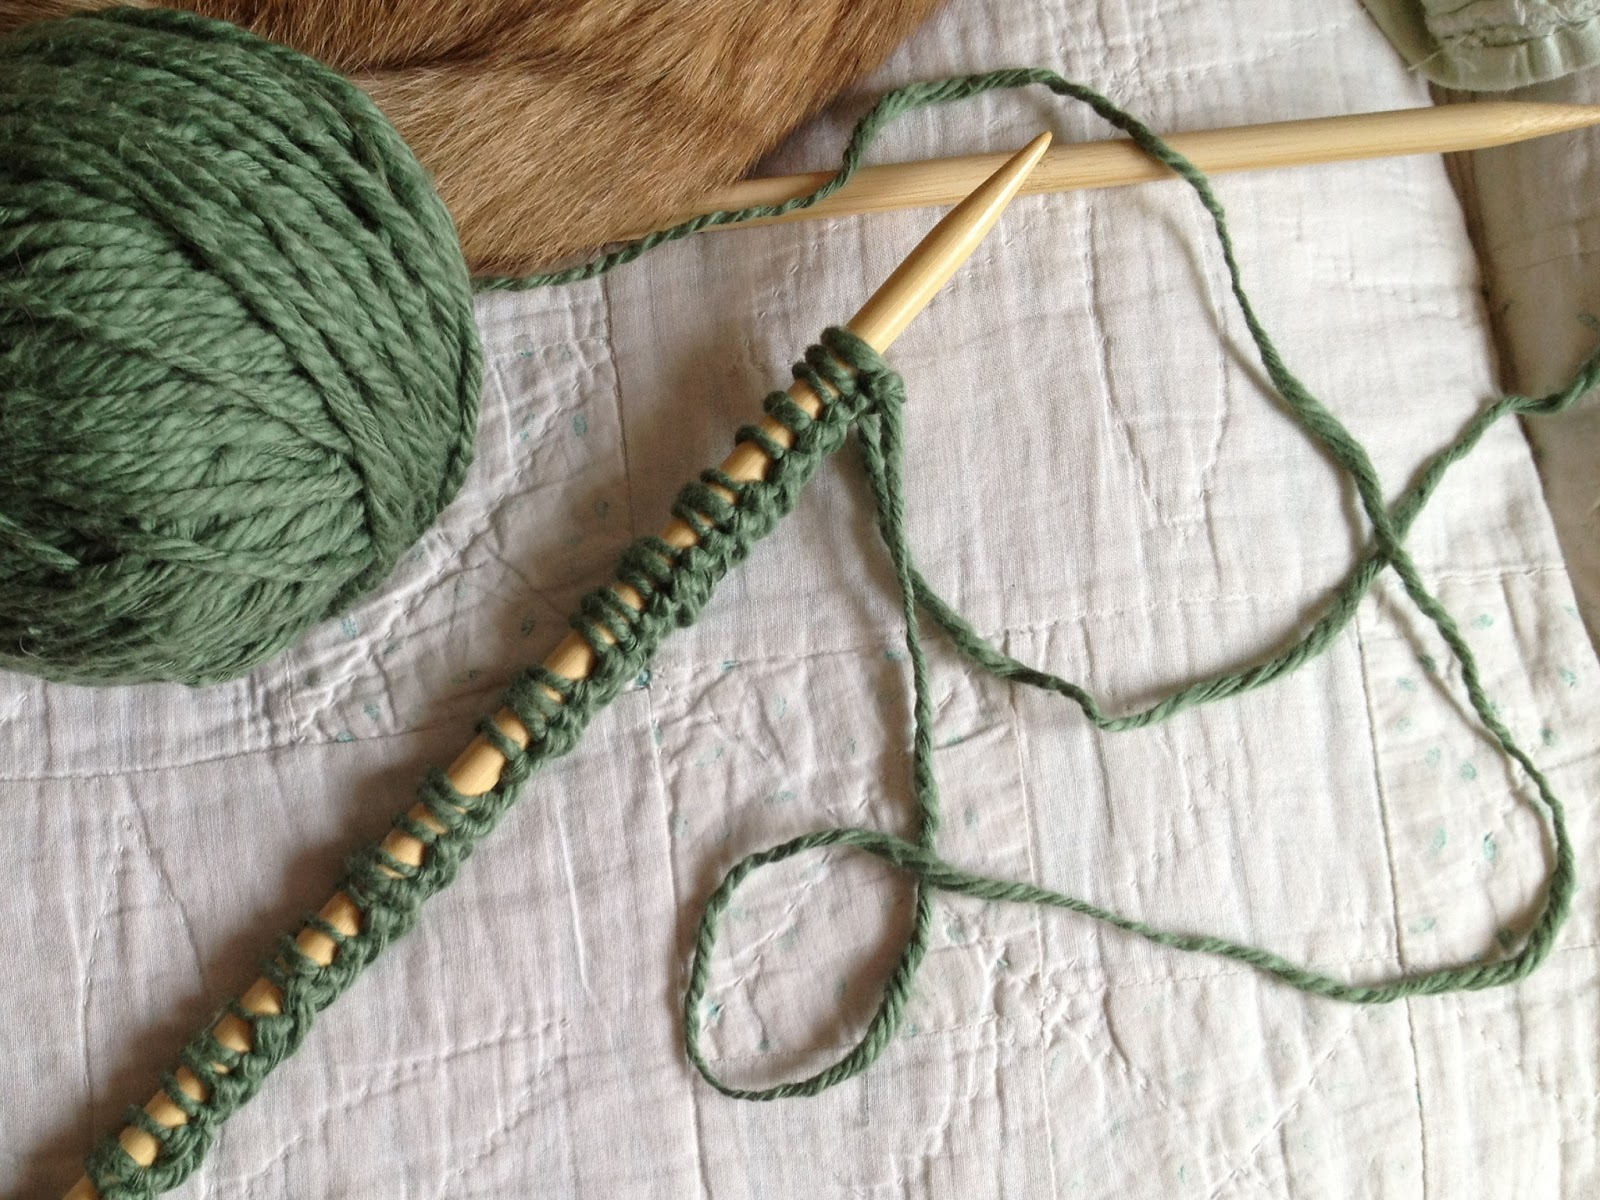 Begginer Knitting Projects Learning Tinselmint Free Infinity Scarf Pattern For Beginners